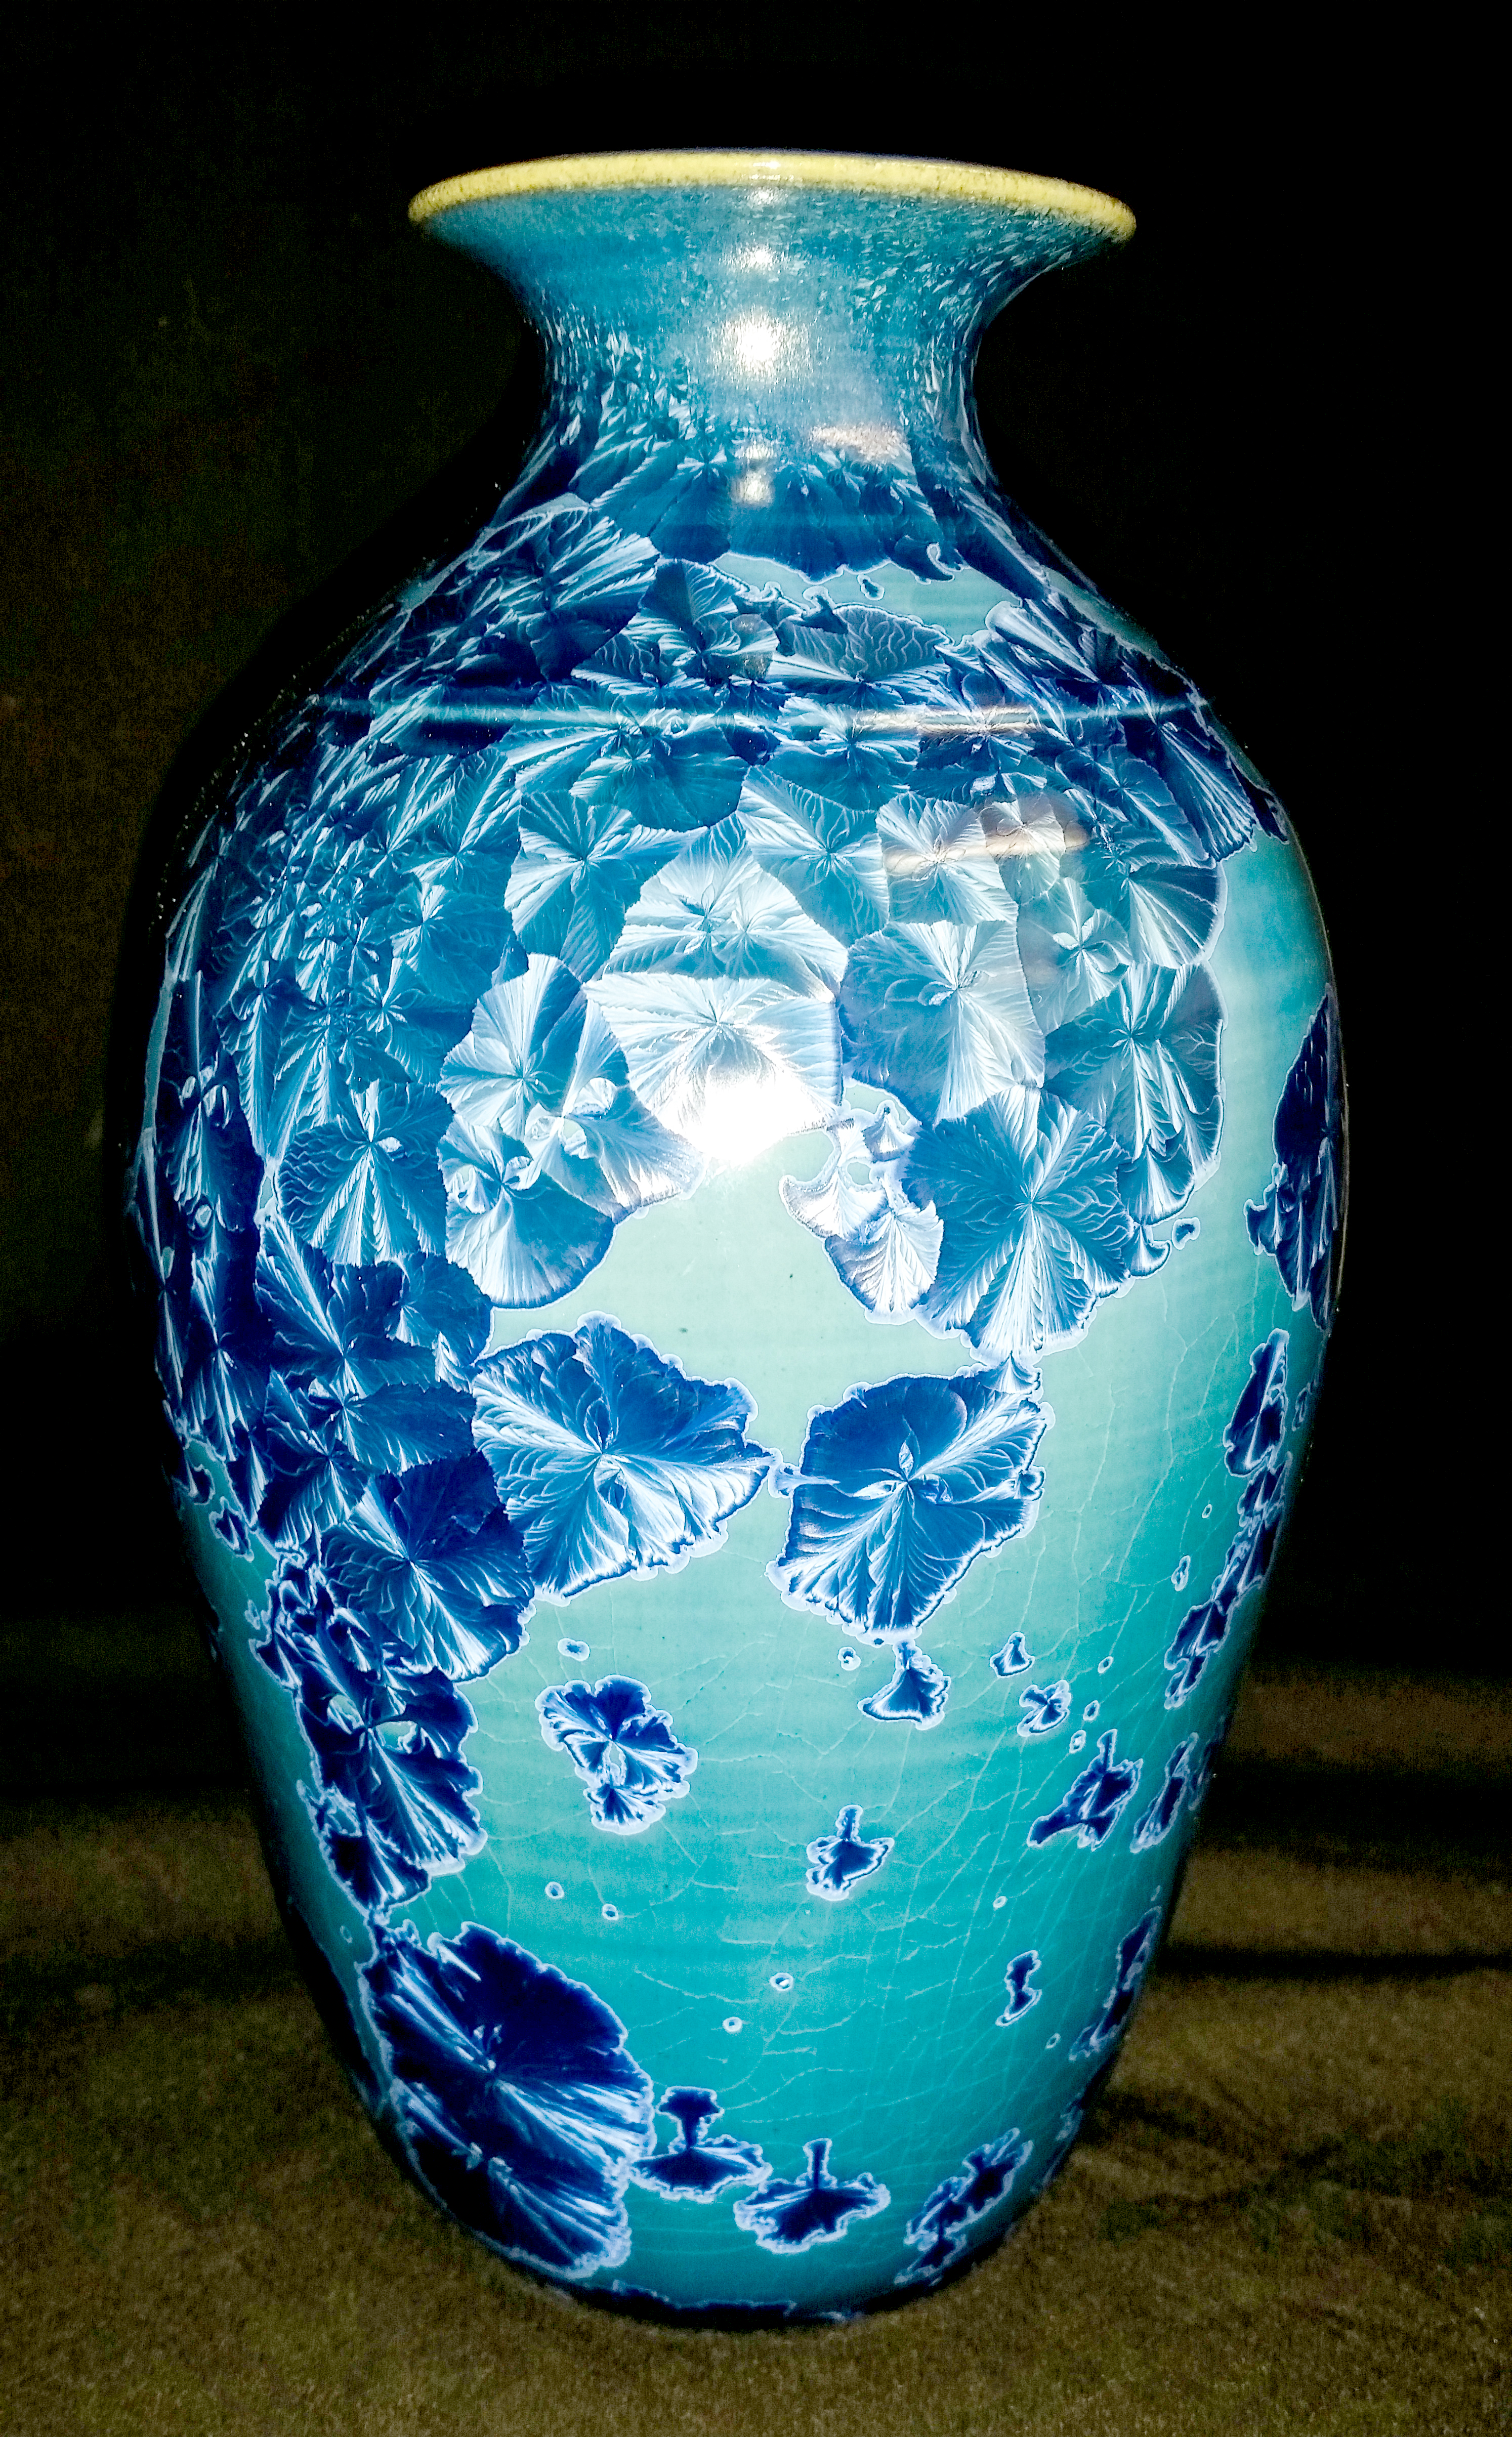 Light Blue Crystalline Vase